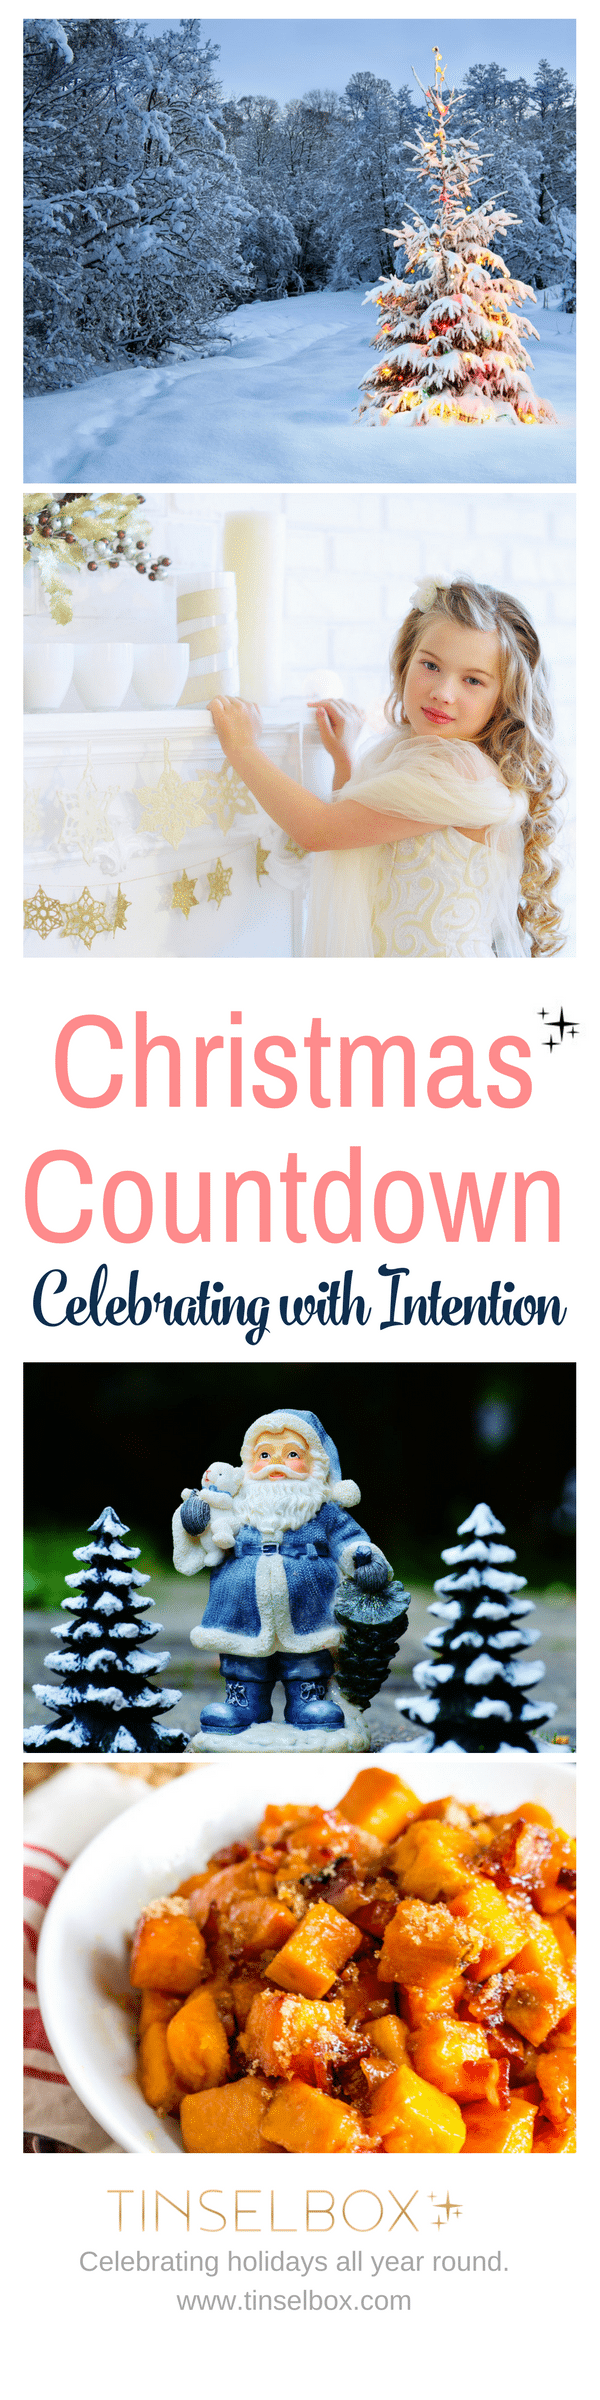 christmas-countdown-celebrating-with-intention